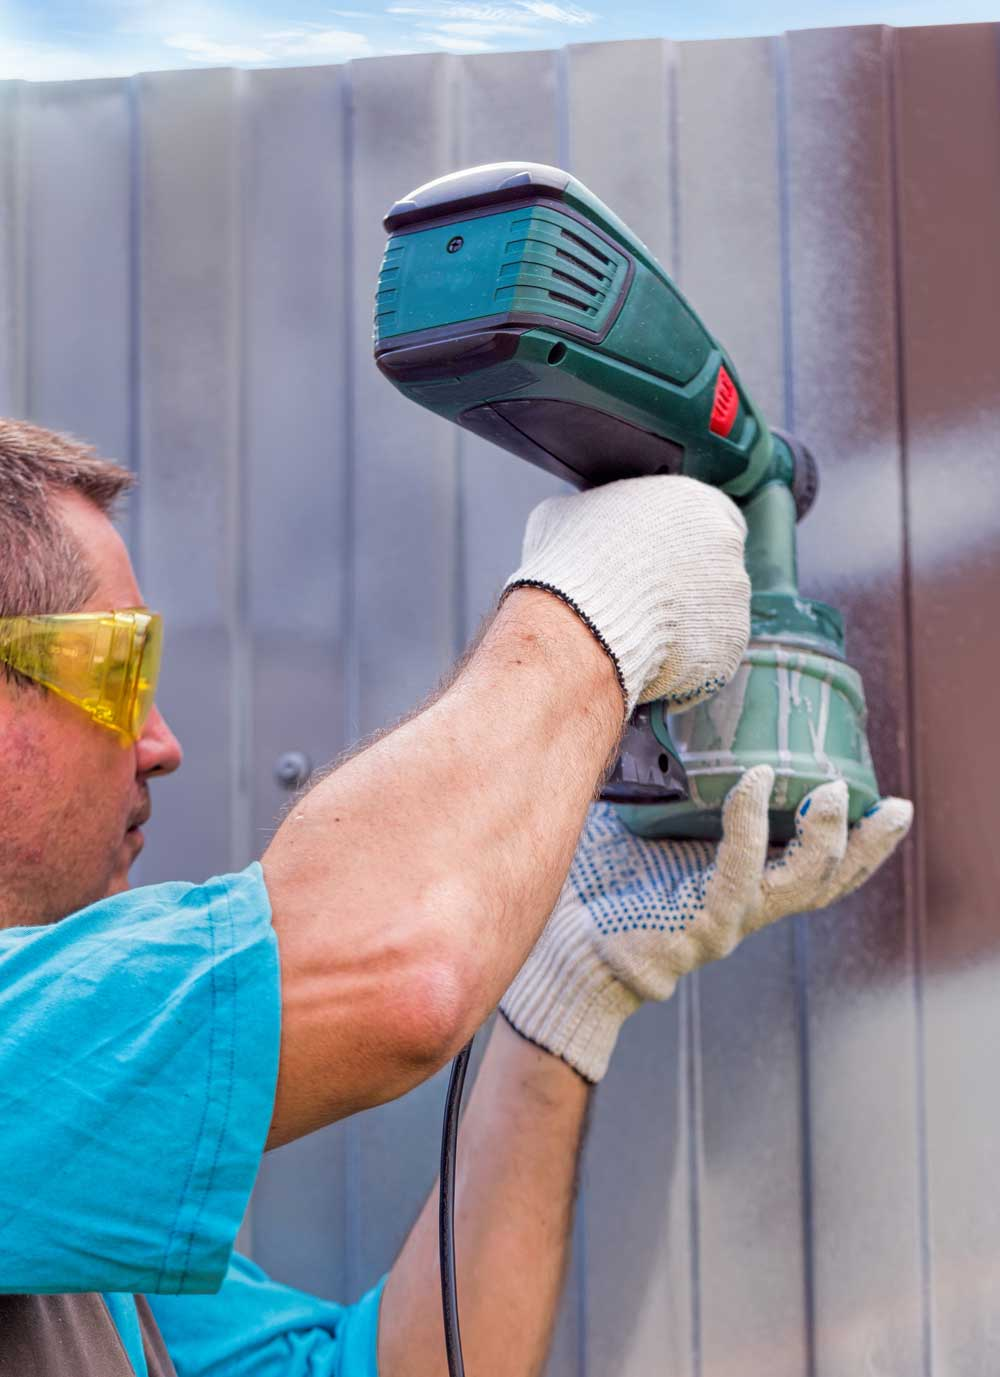 Painter applying stain to a fence using a paint sprayer